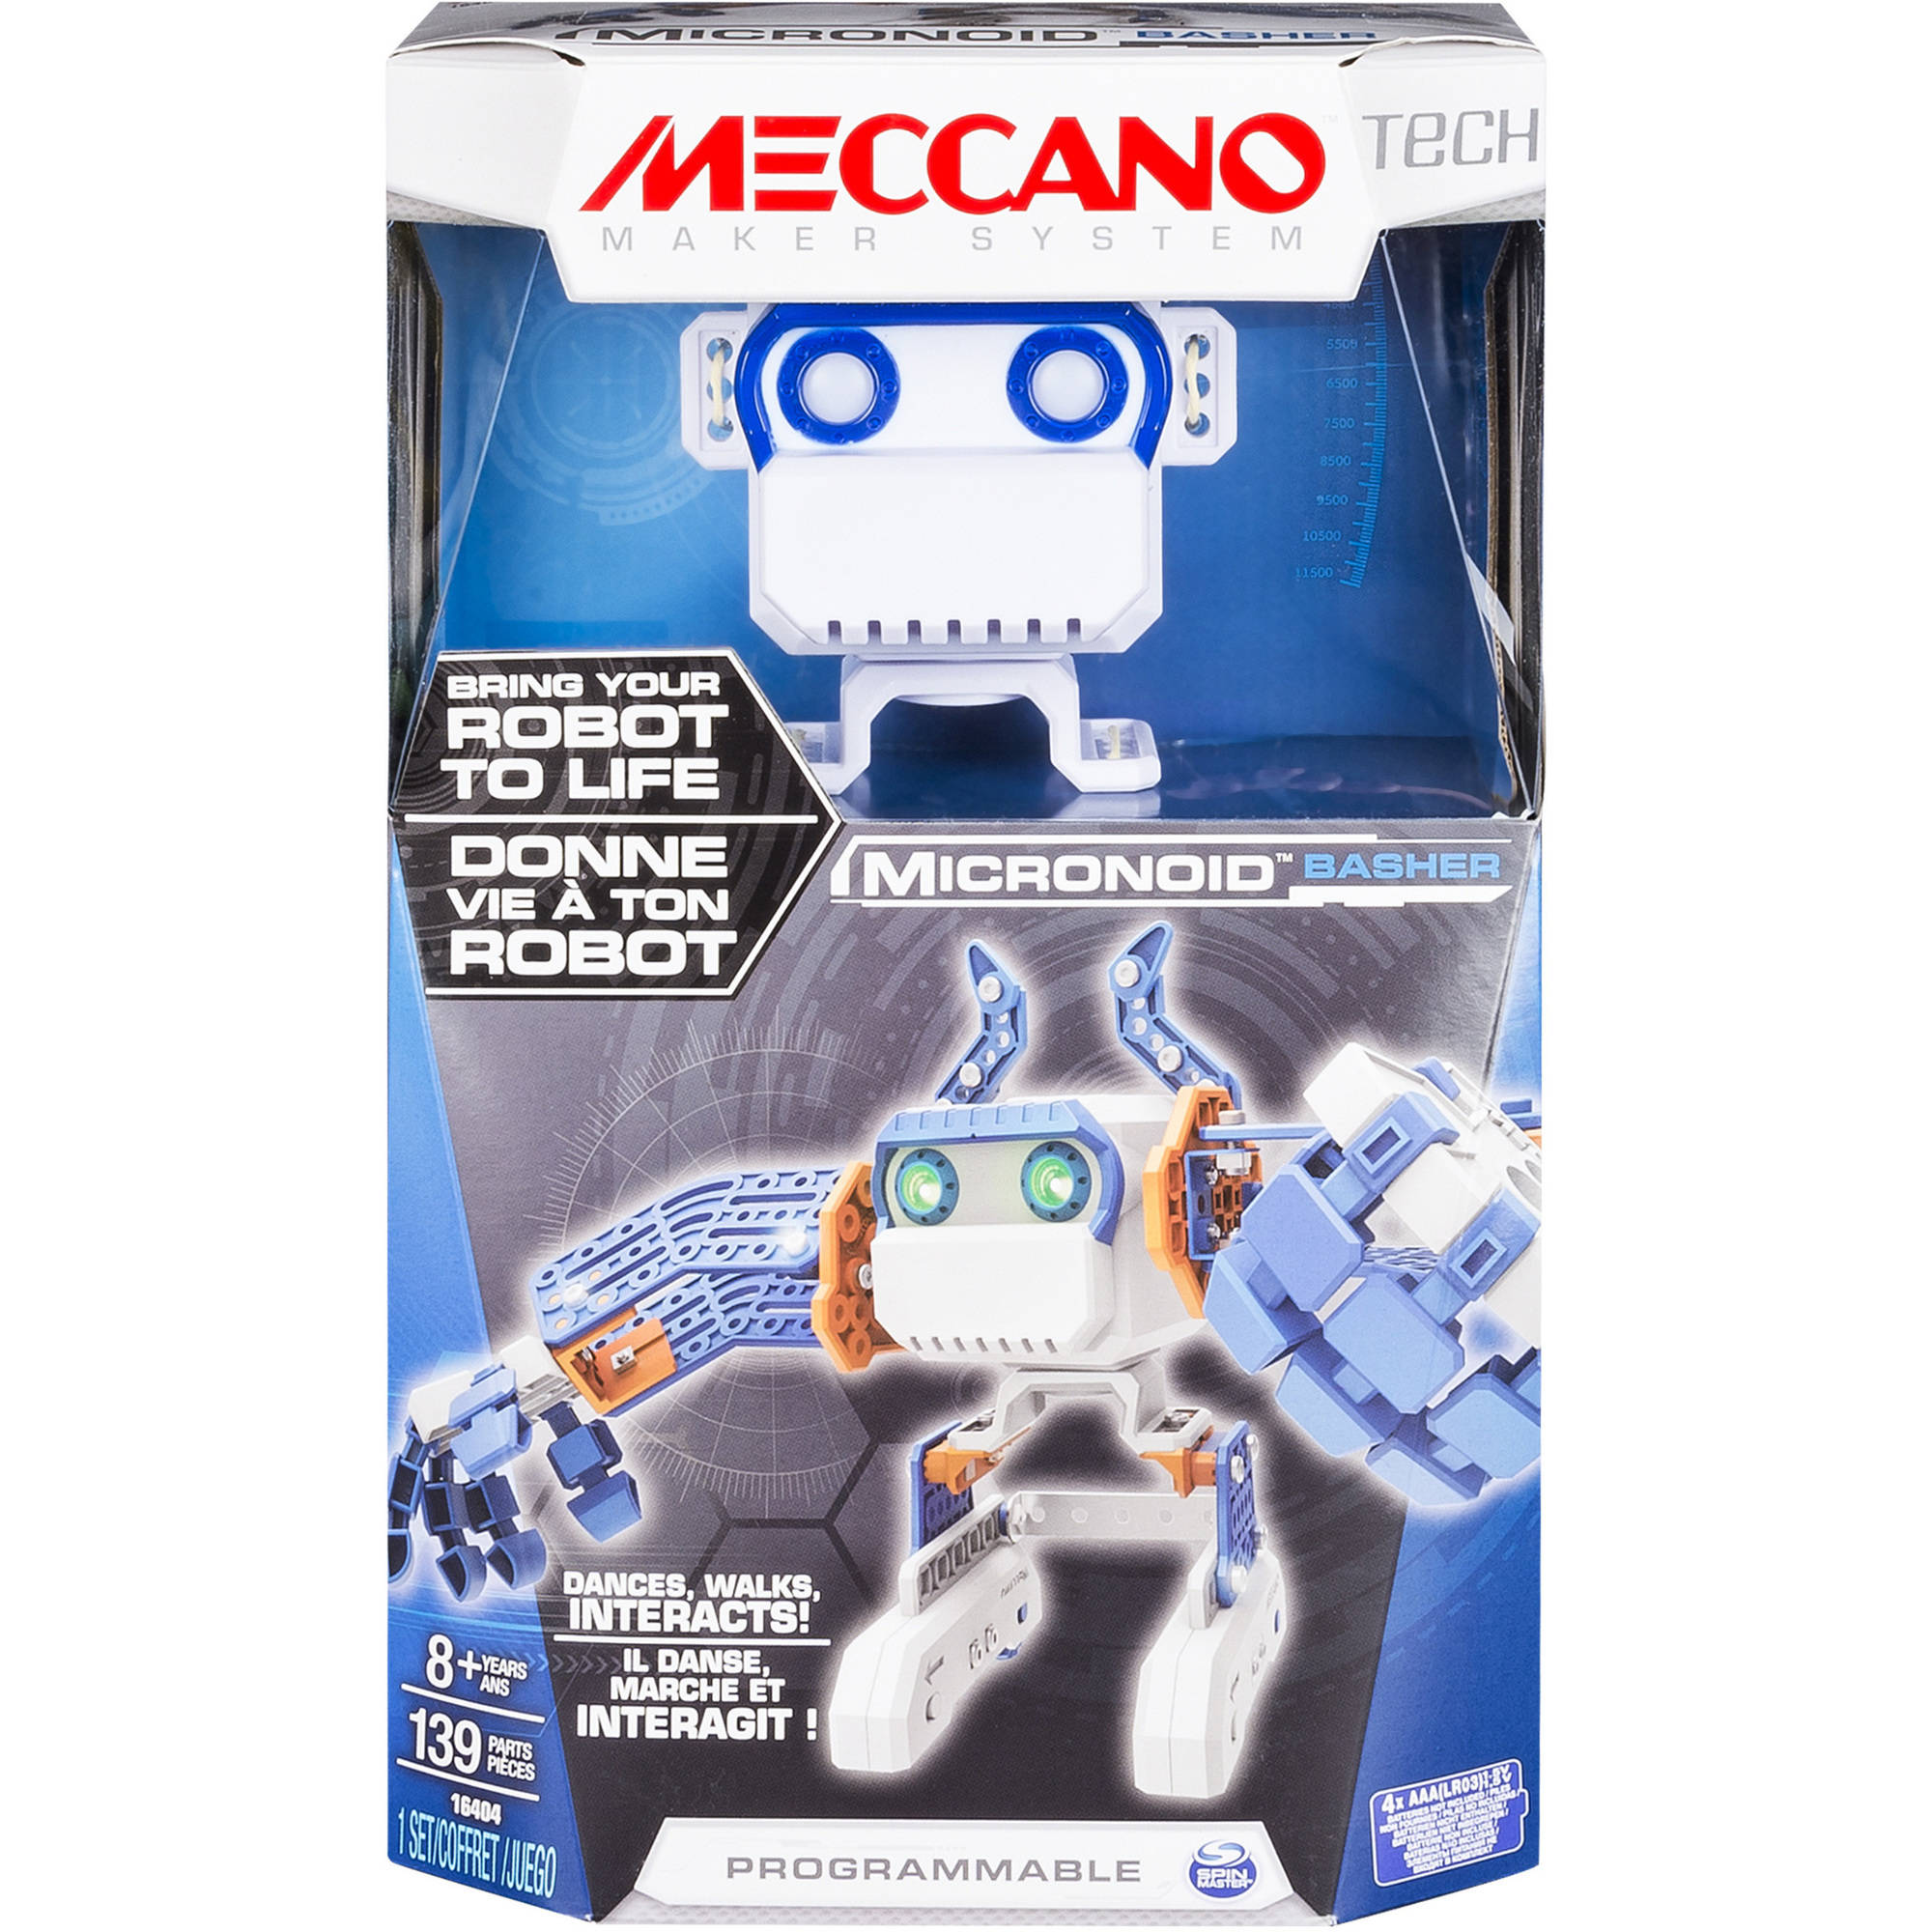 Meccano-Erector - Micronoid - Blue Basher, Programmable Robot Building Kit